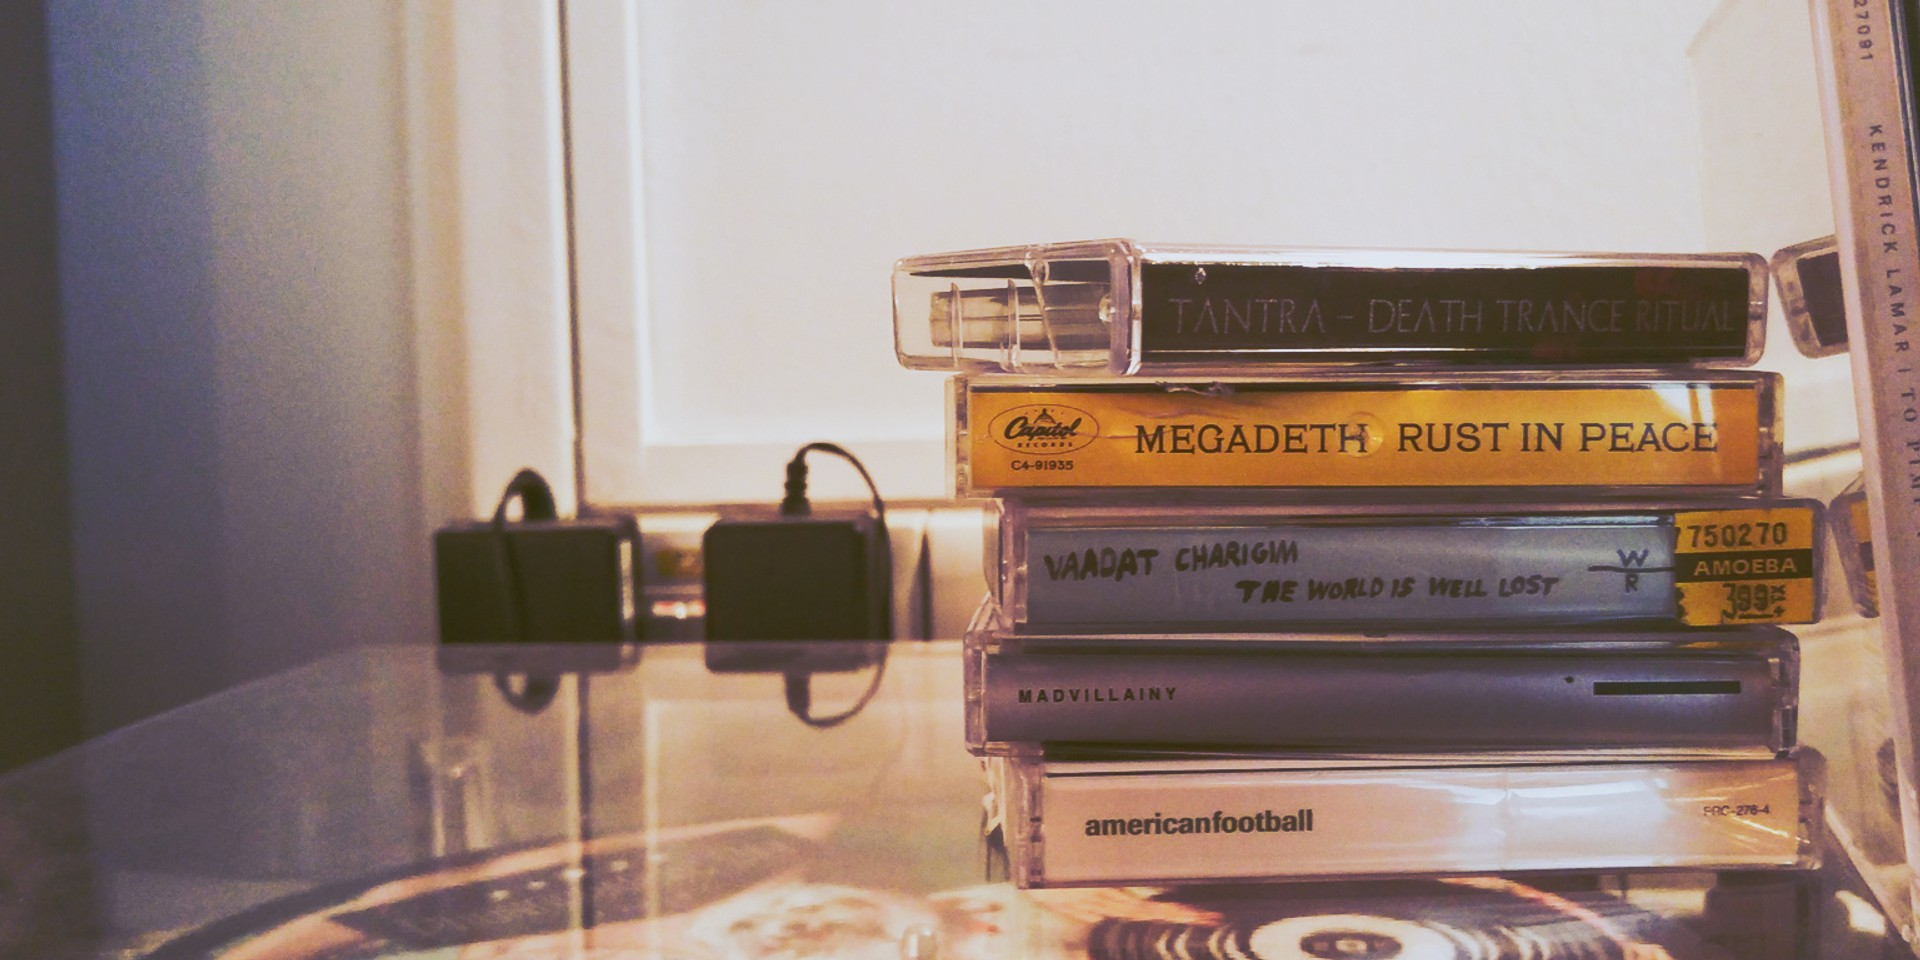 Cassettes making a comeback? Maybe not, but it's still very cool